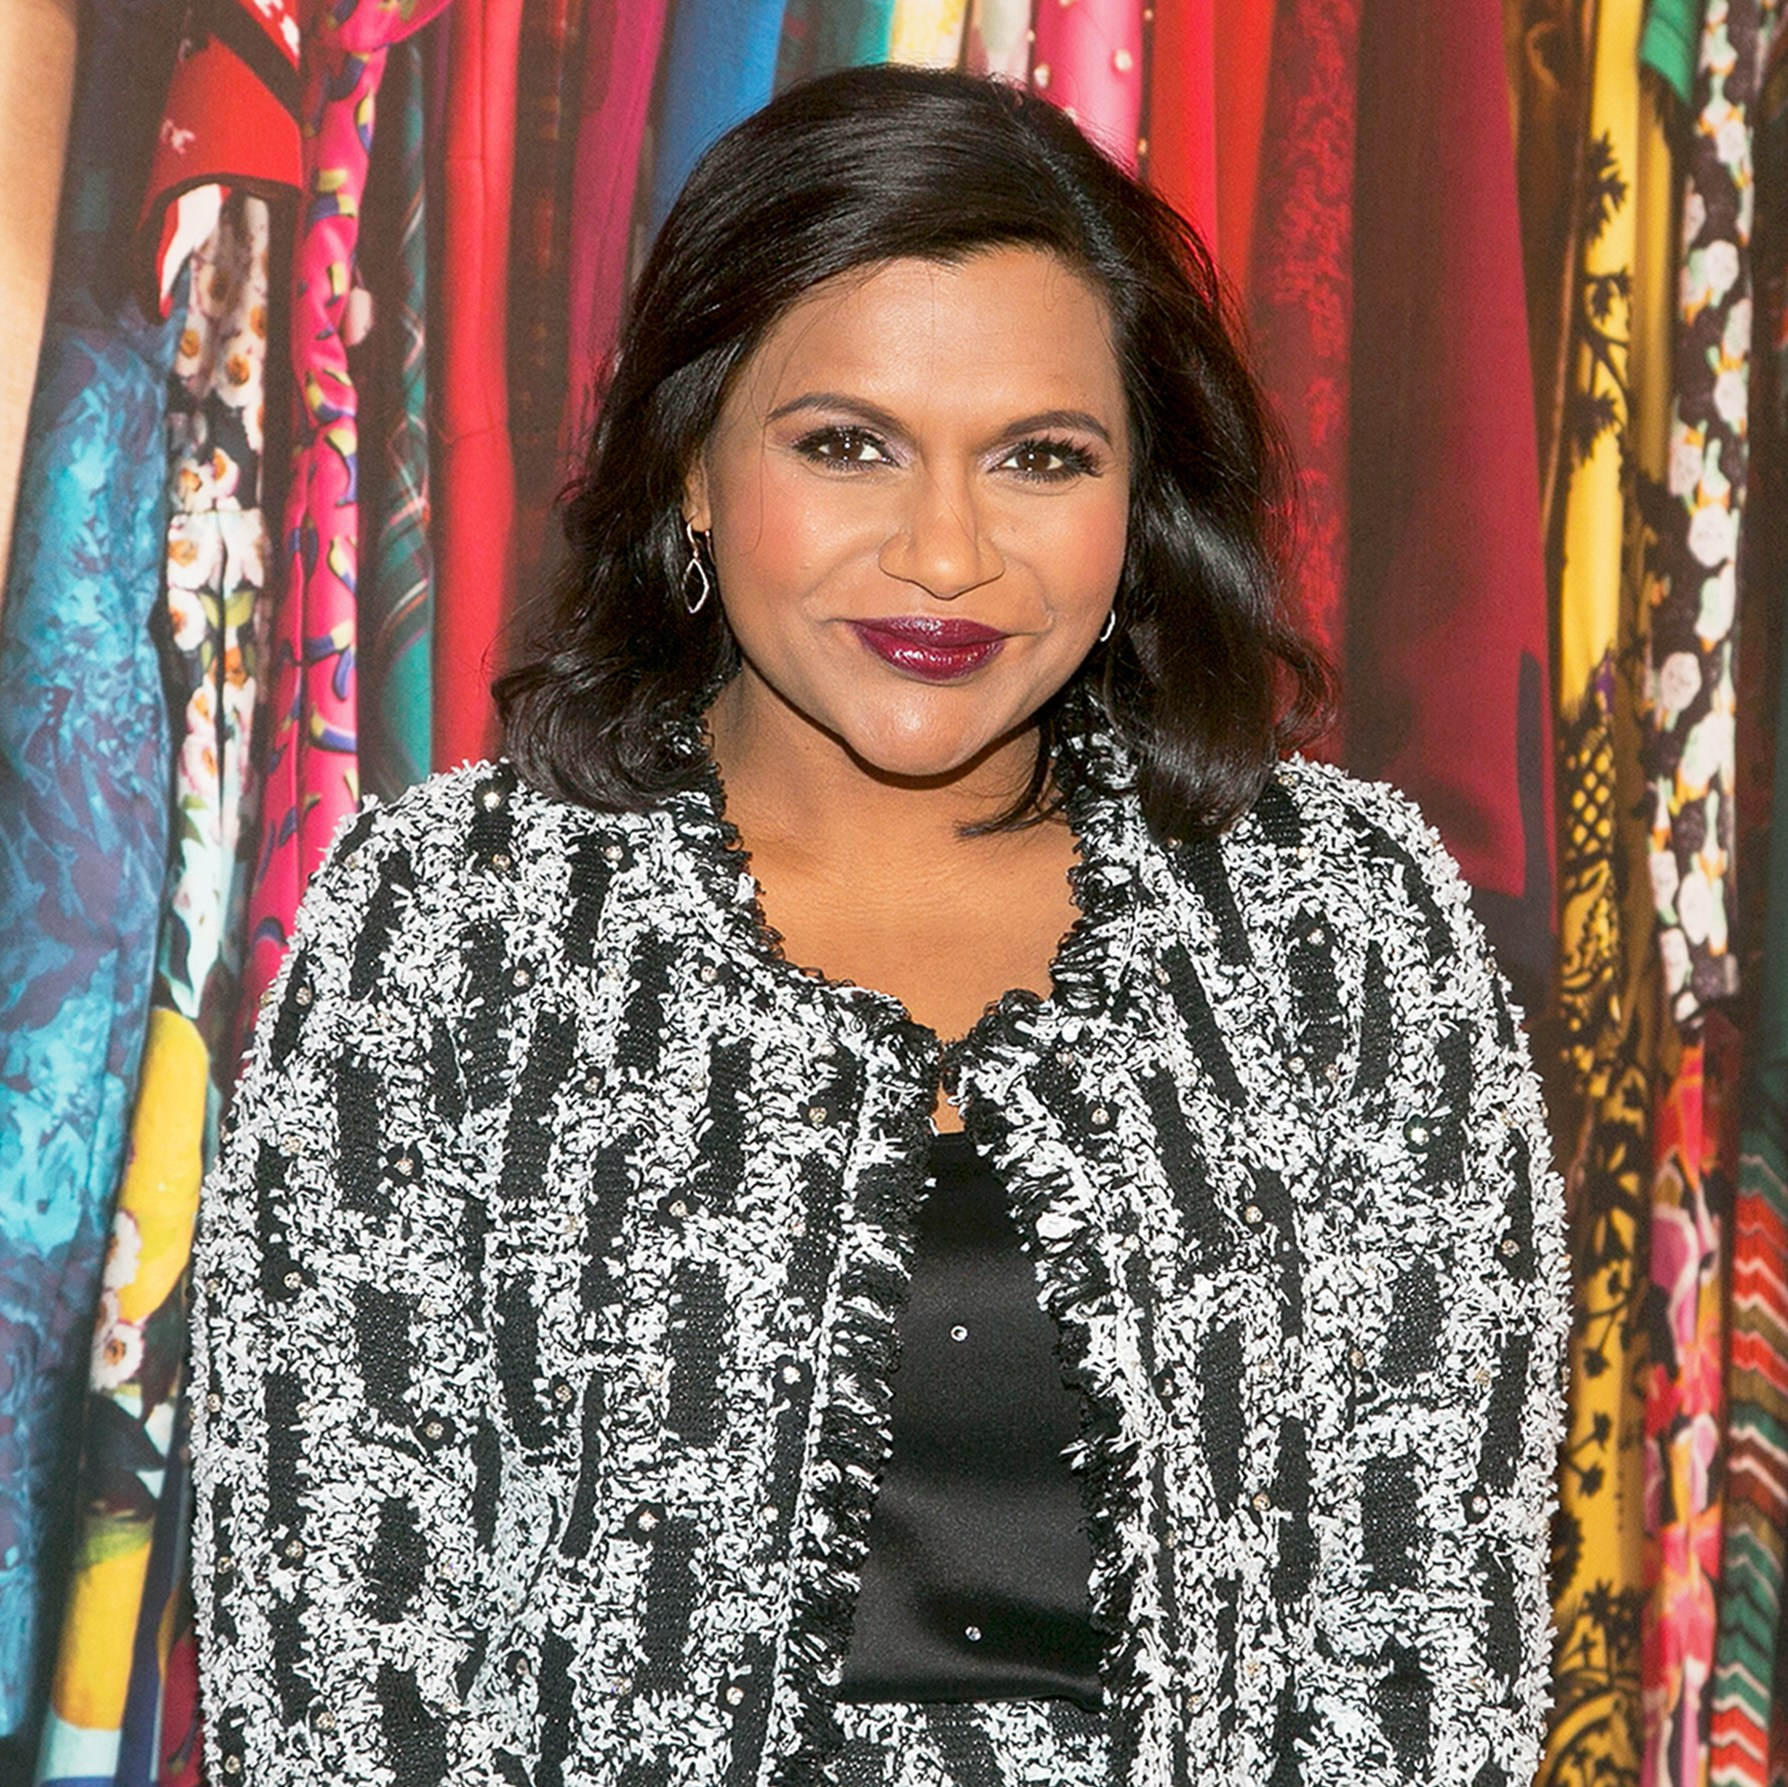 Mindy Kaling arrives for The Paley Center for Media's 11th Annual PaleyFest Fall TV 2017 Previews Los Angeles The CW at The Paley Center in Beverly Hills, California.